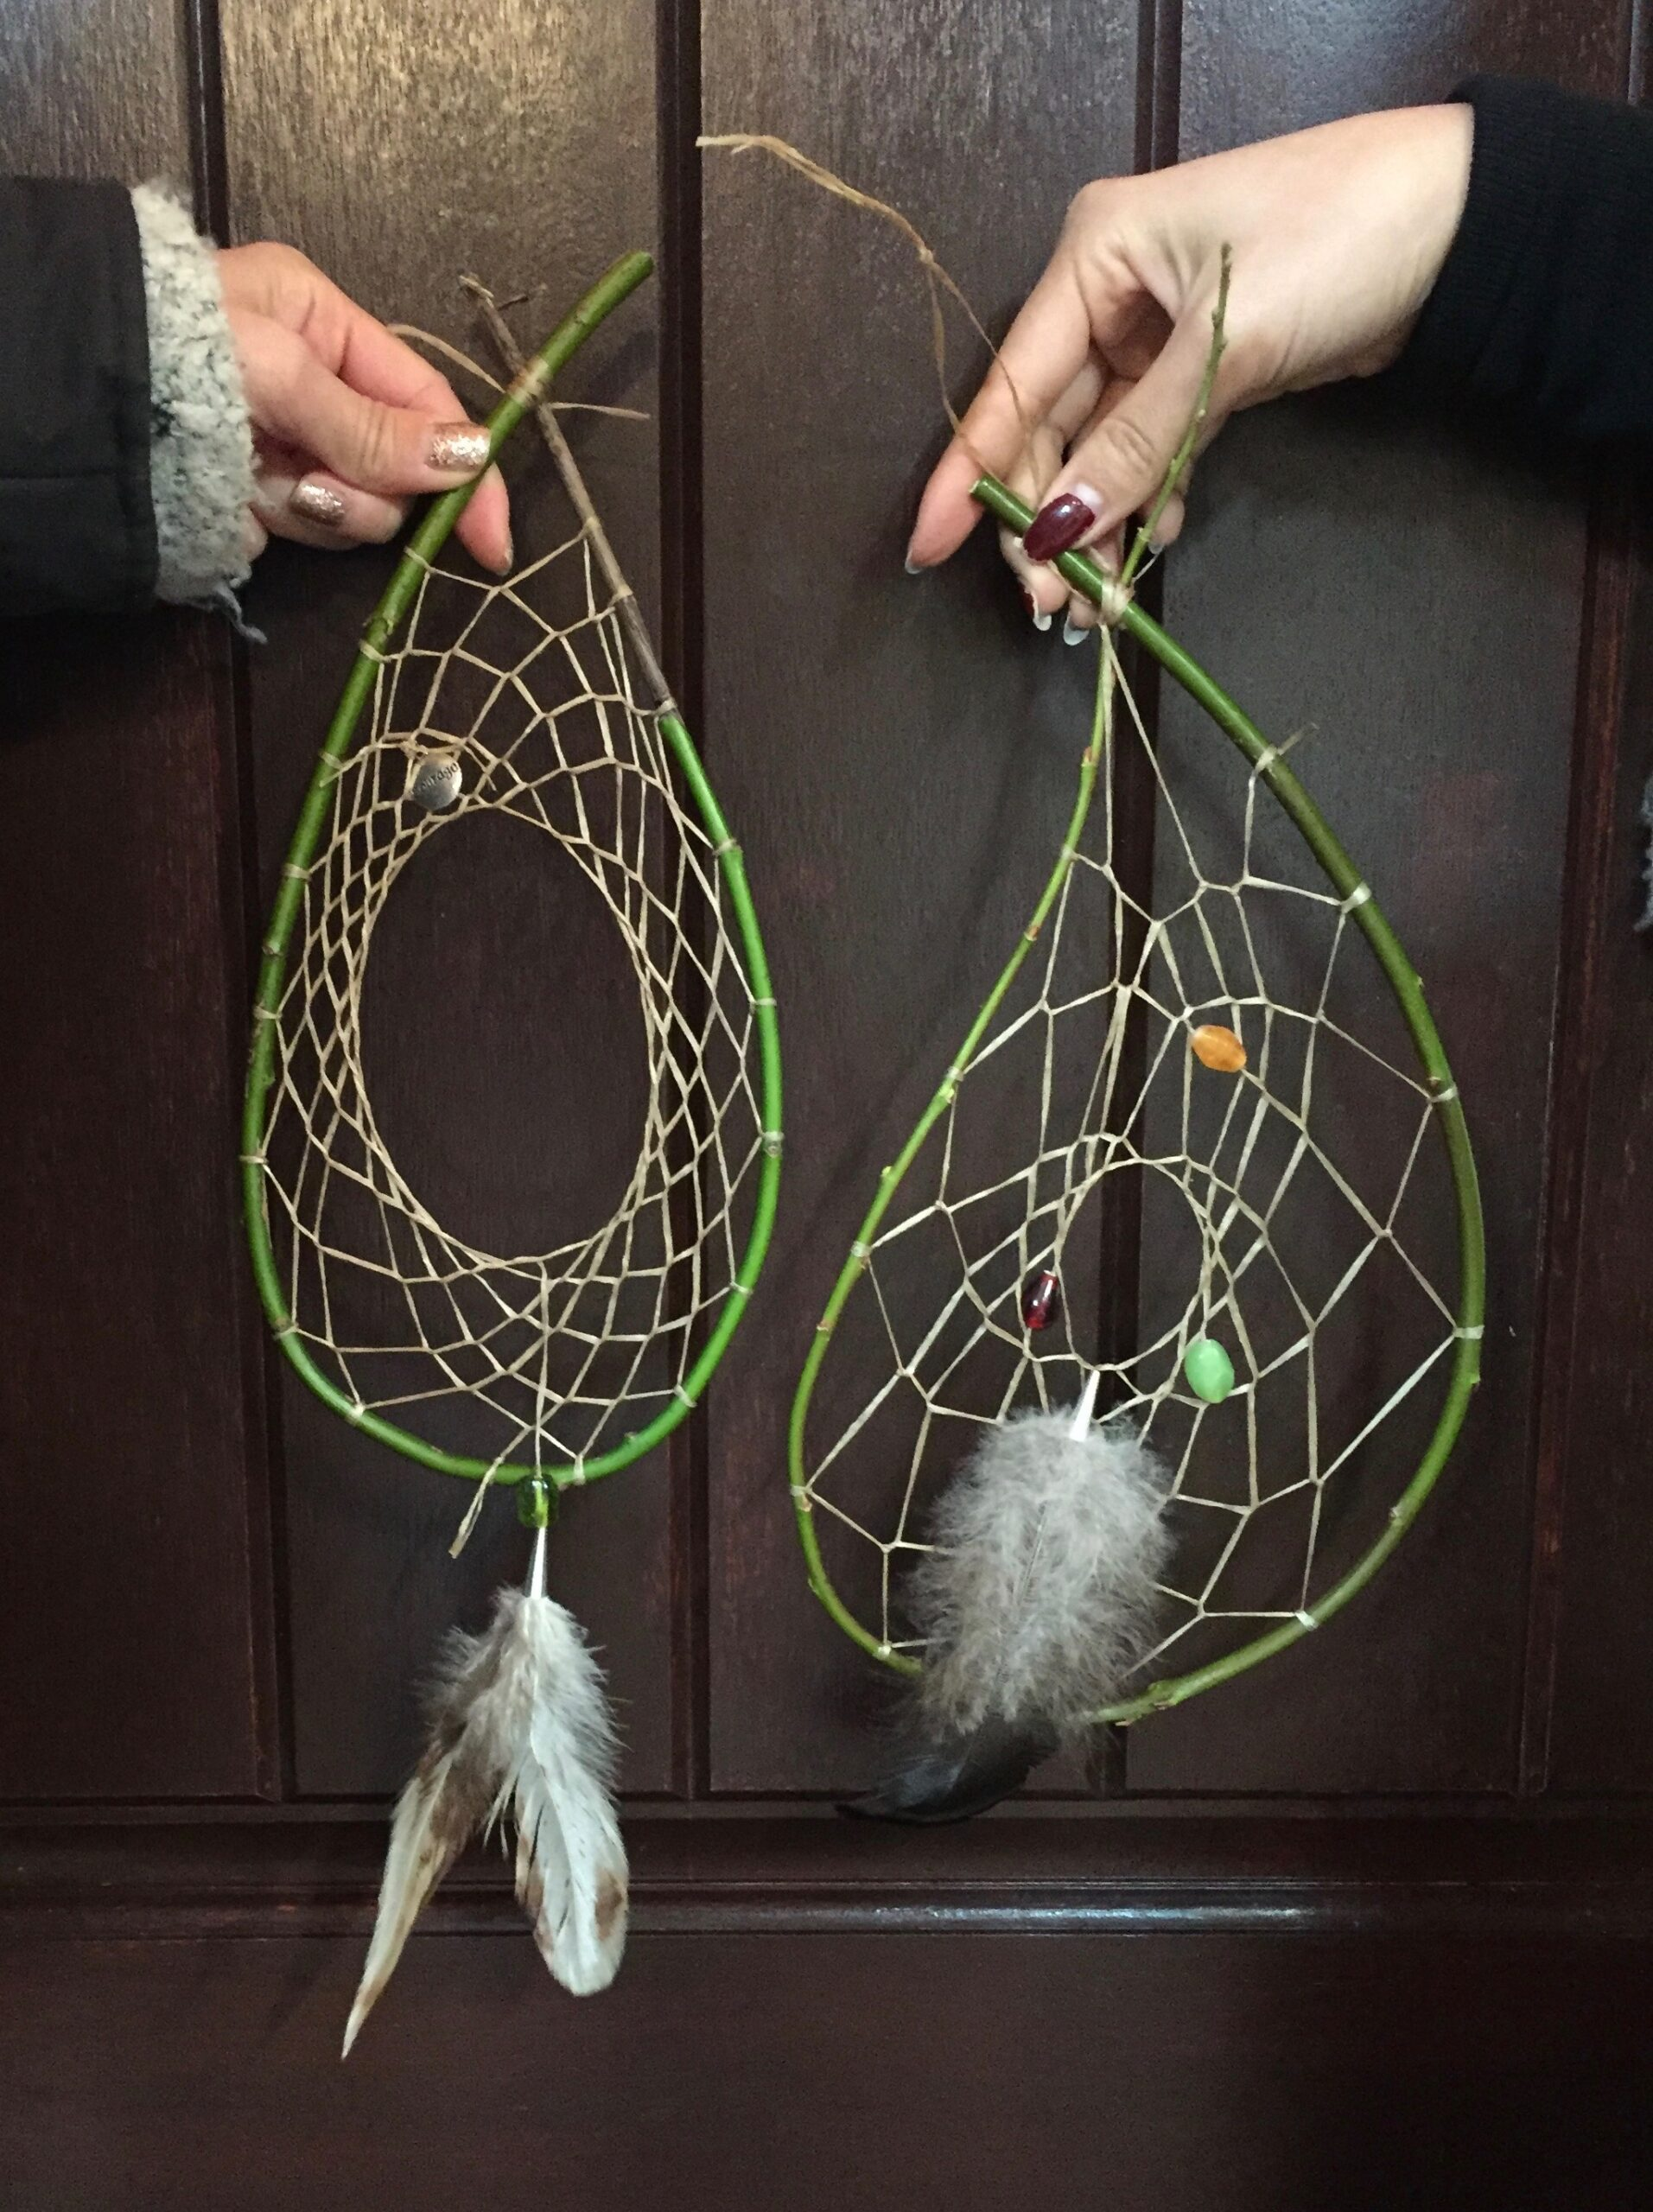 Two hands each holding dream catchers photo